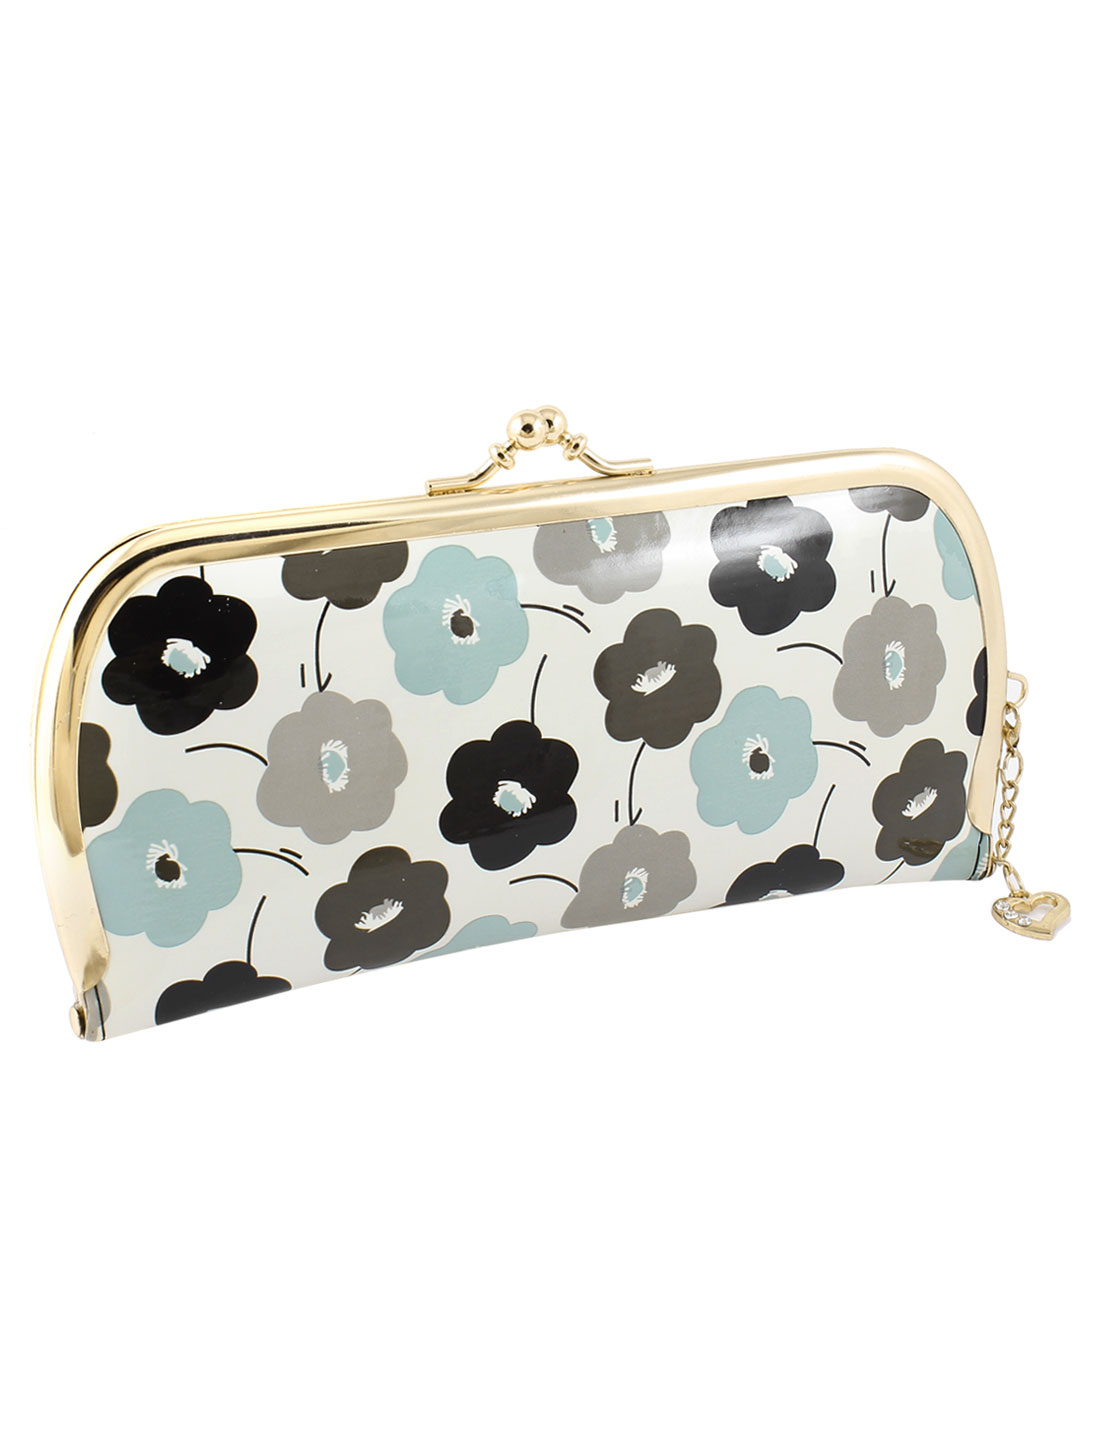 Metal Kisslock Clasp Black Gray Green Flowers Printed Faux Leather Wallet Purse